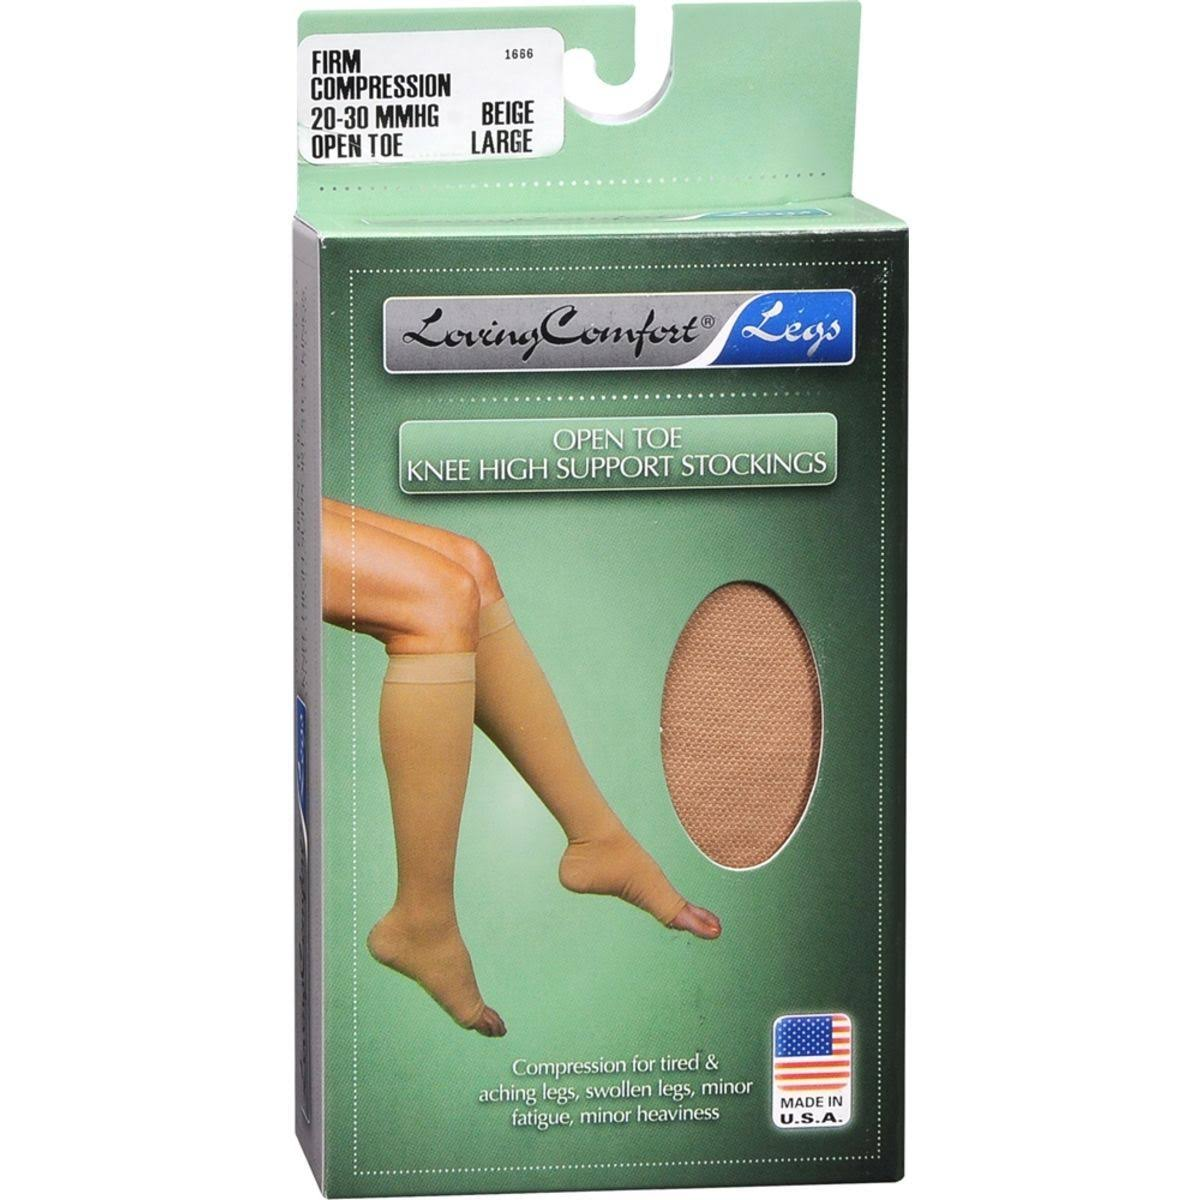 Loving Comfort Legs Fashion Knee High Stockings - 20-30mmhg, Beige, Large